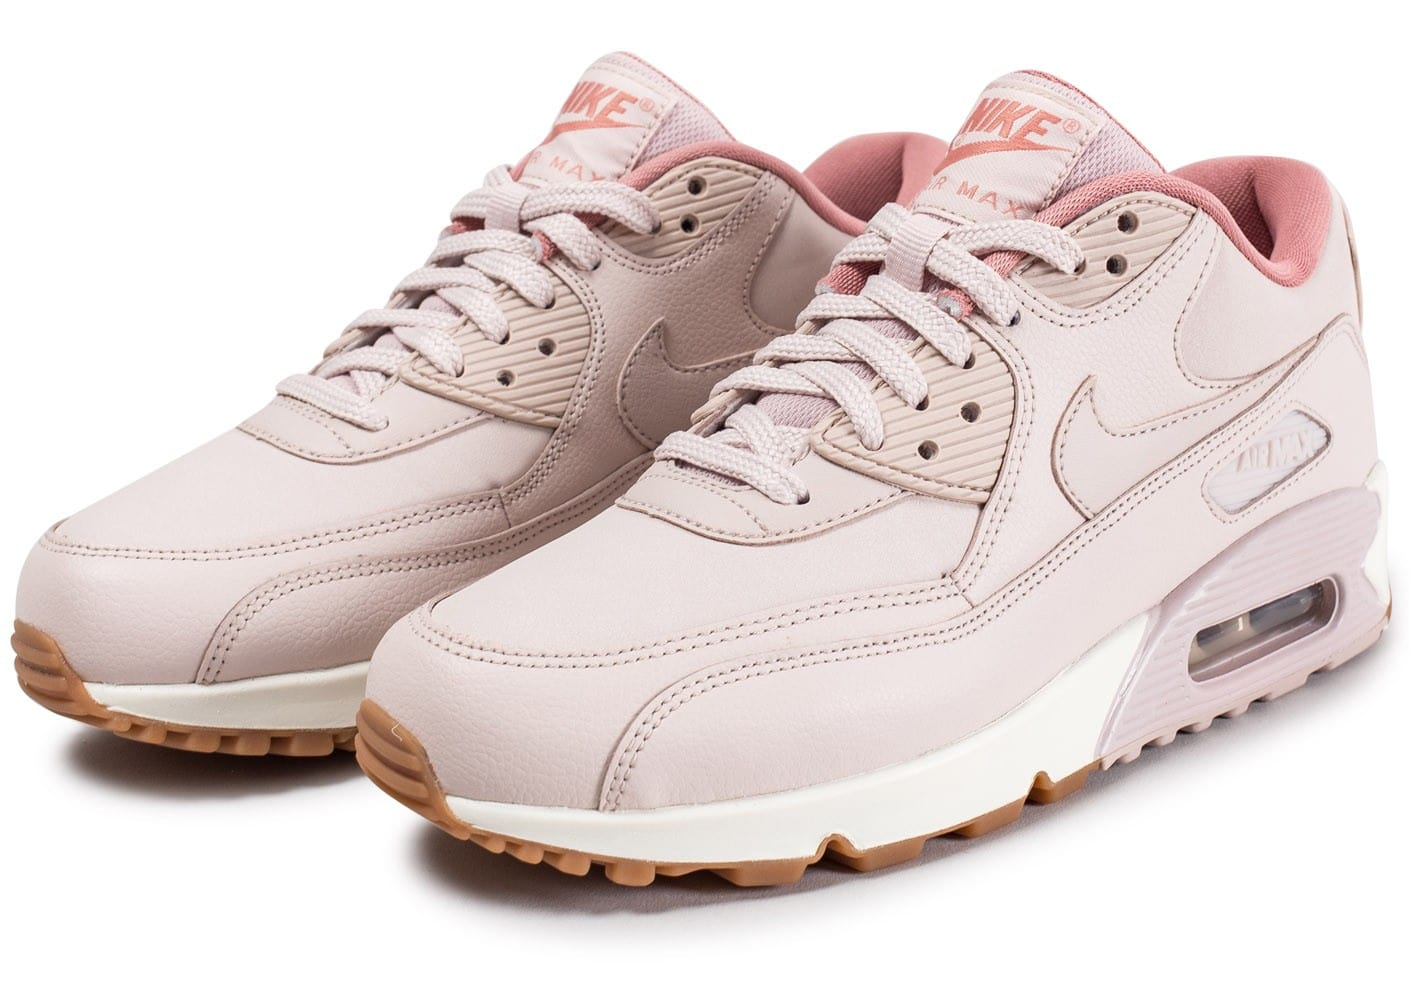 nike air max 90 w leather rose chaussures pour lyc ens chausport. Black Bedroom Furniture Sets. Home Design Ideas